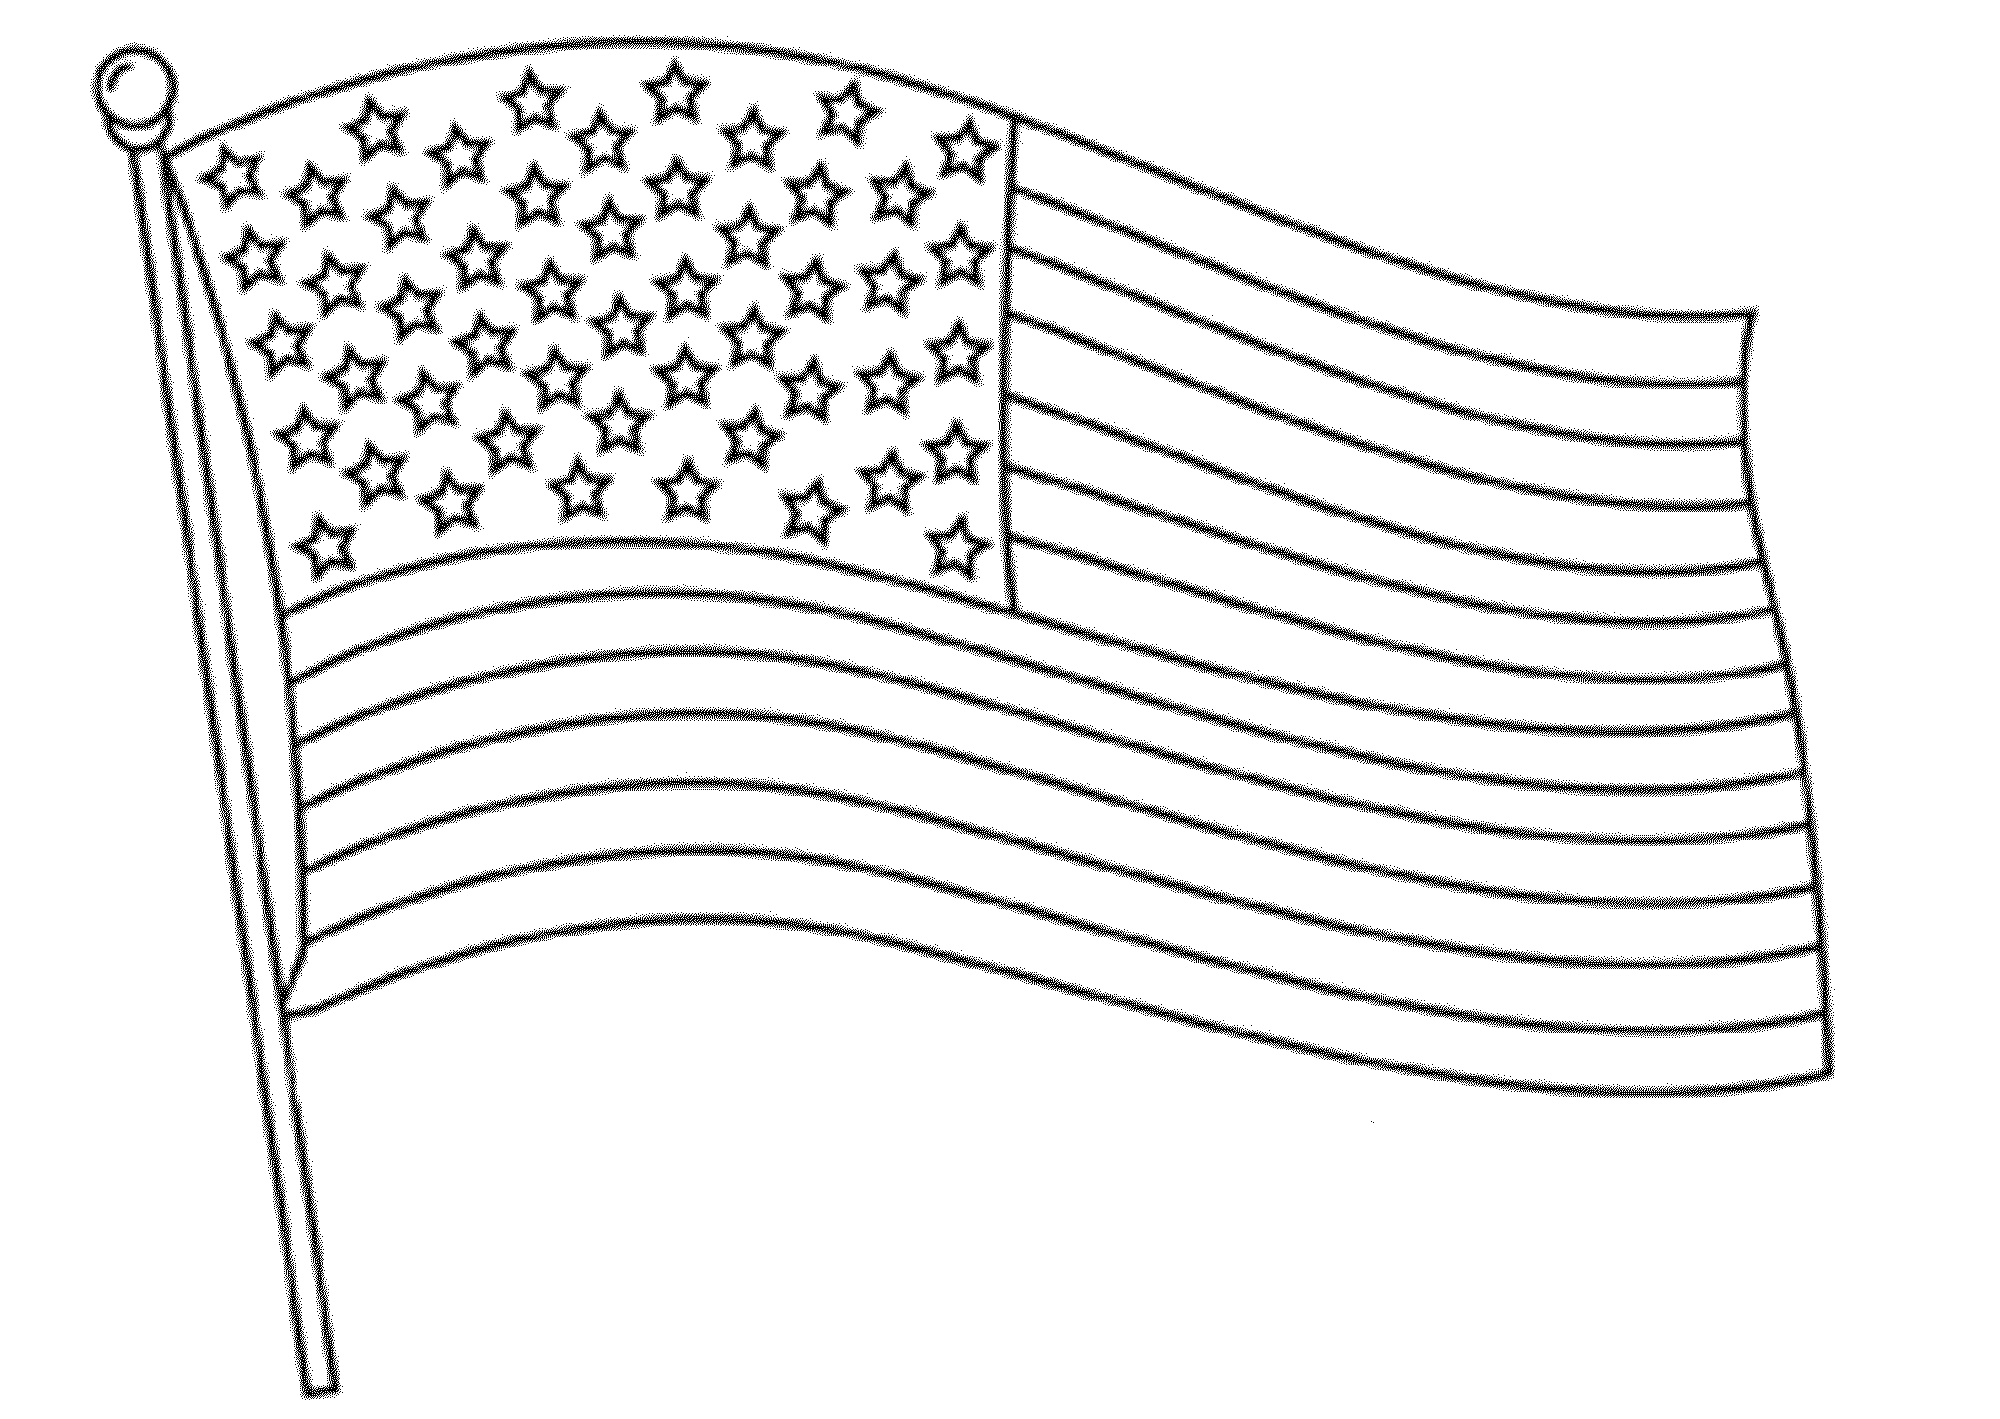 Afro American Flag Clipart